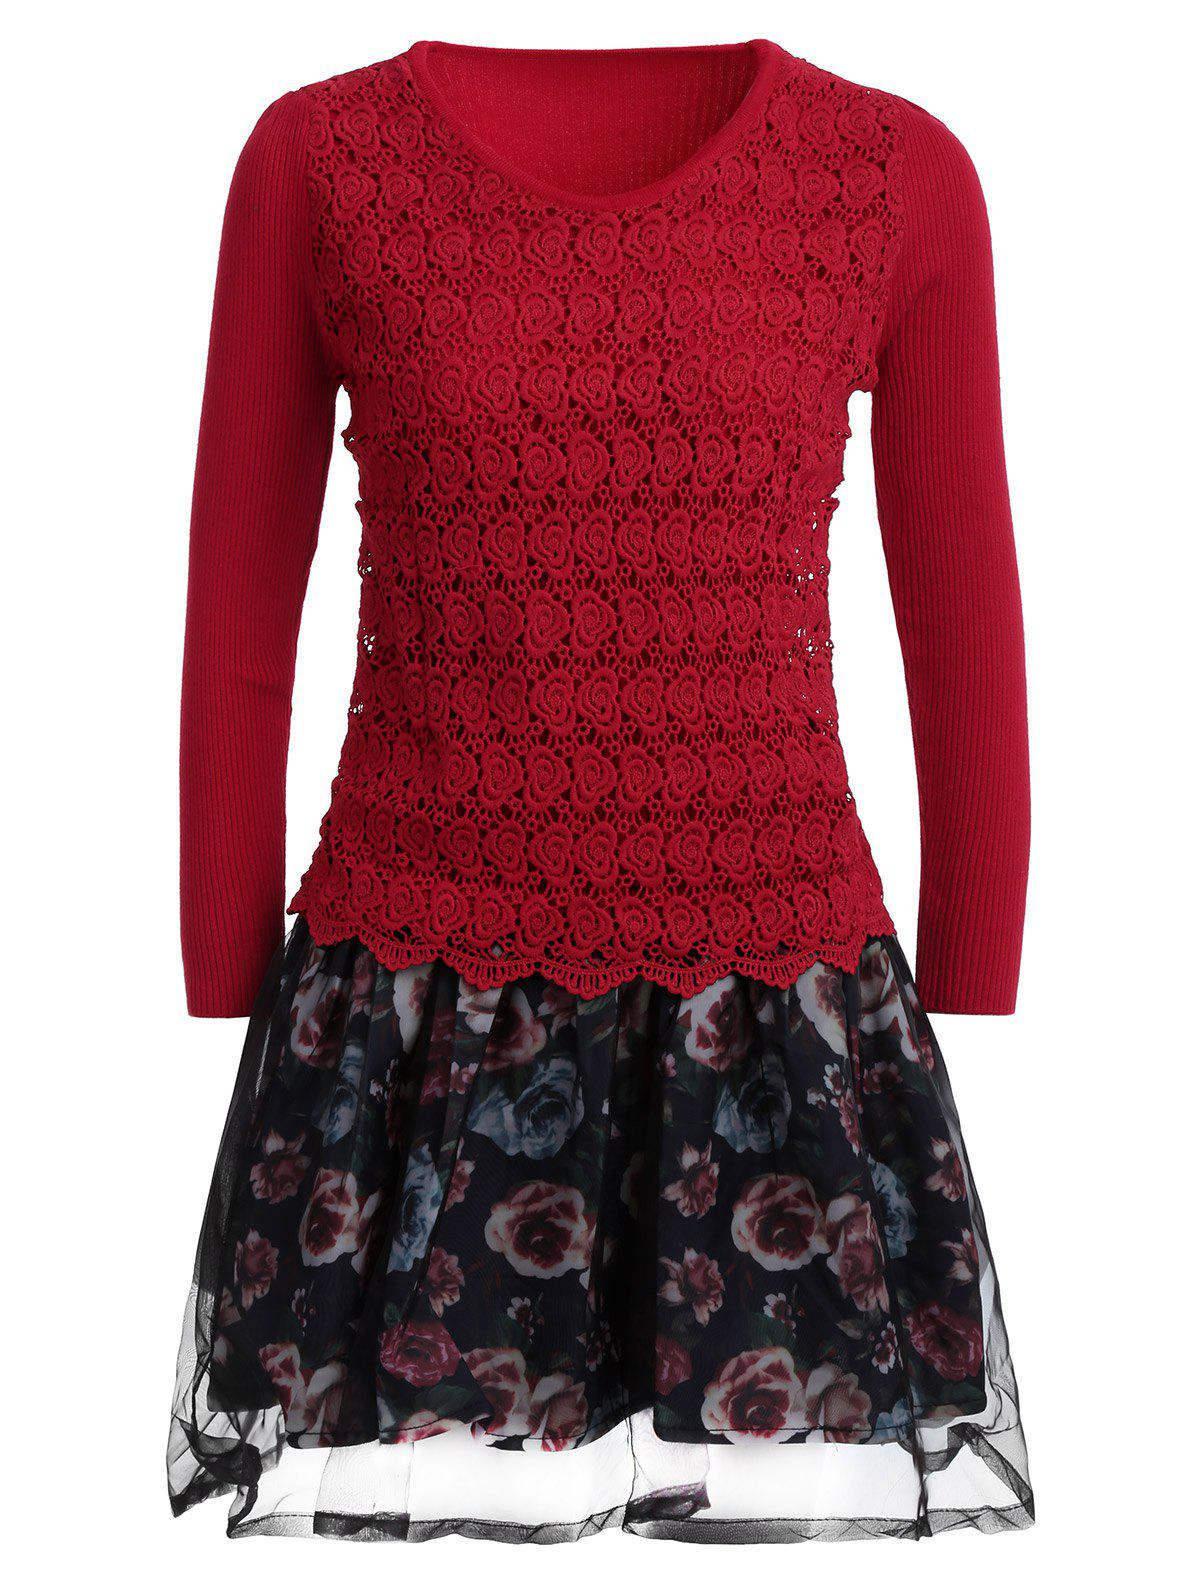 Organza Spliced Floral Layered Sweater Skater Dress - RED ONE SIZE